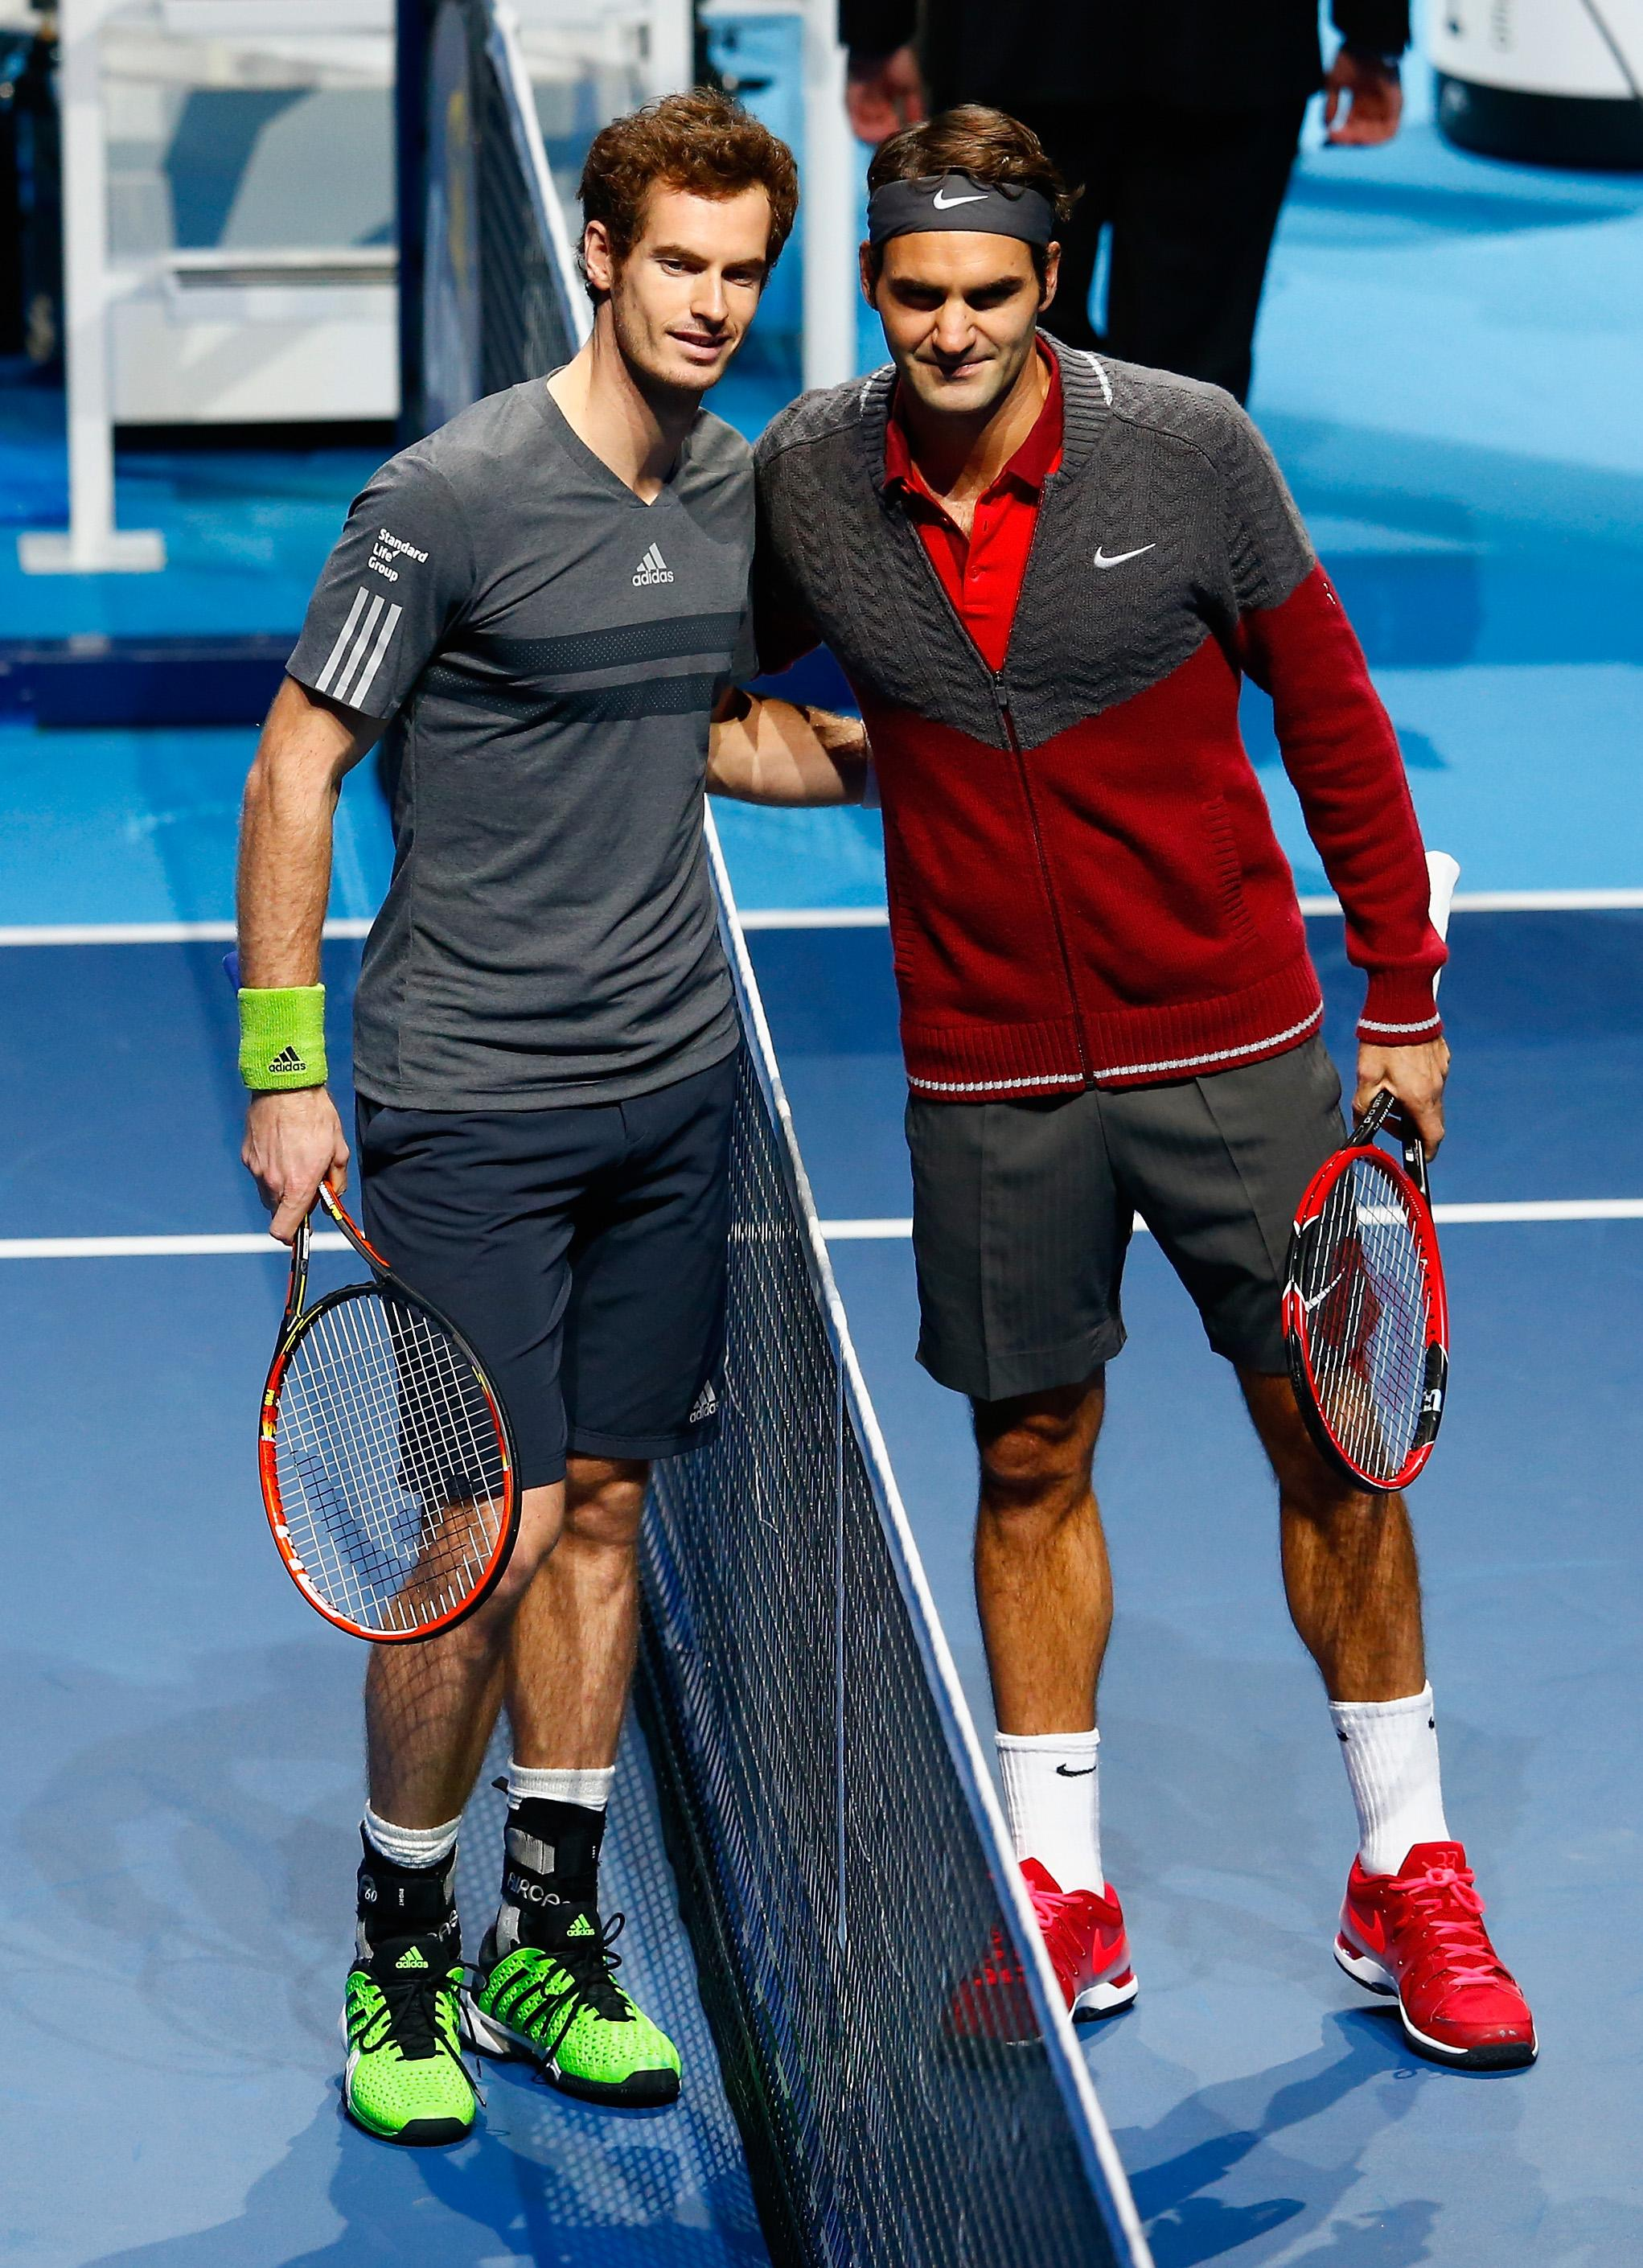 Roger Federer reckons Andy Murray must be patient as he recovers from his hip injury